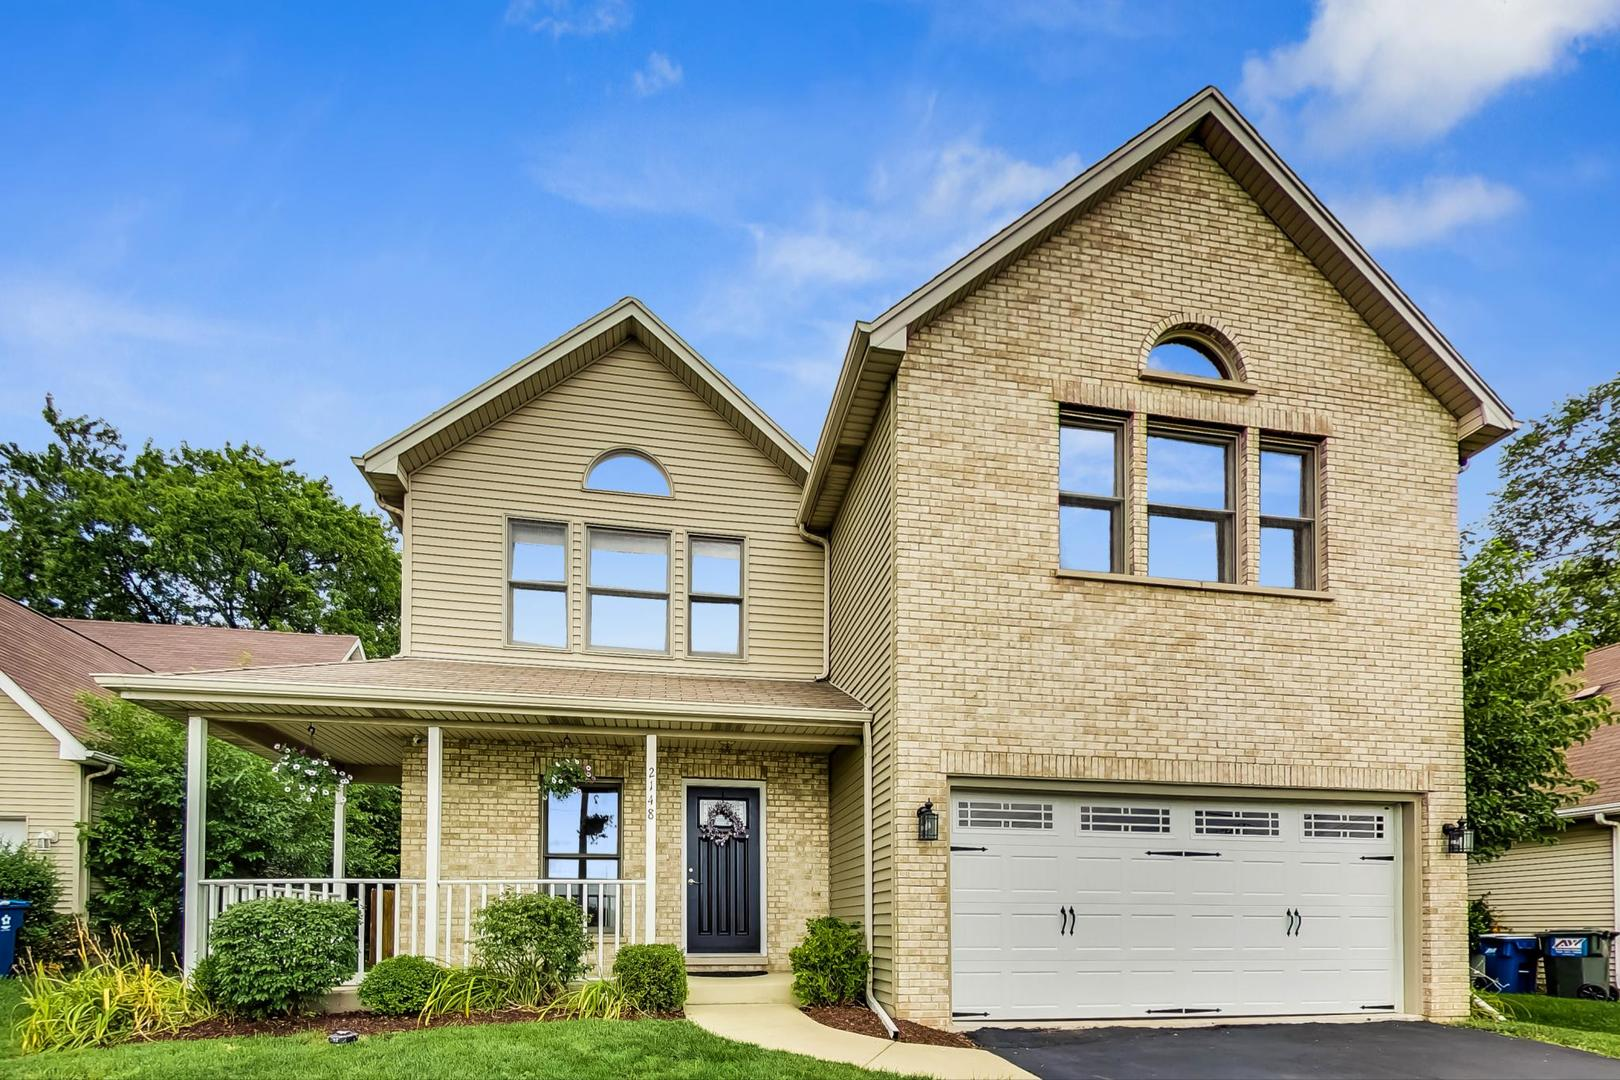 Photo for 2148 63rd Street, Downers Grove, IL 60516 (MLS # 10800972)